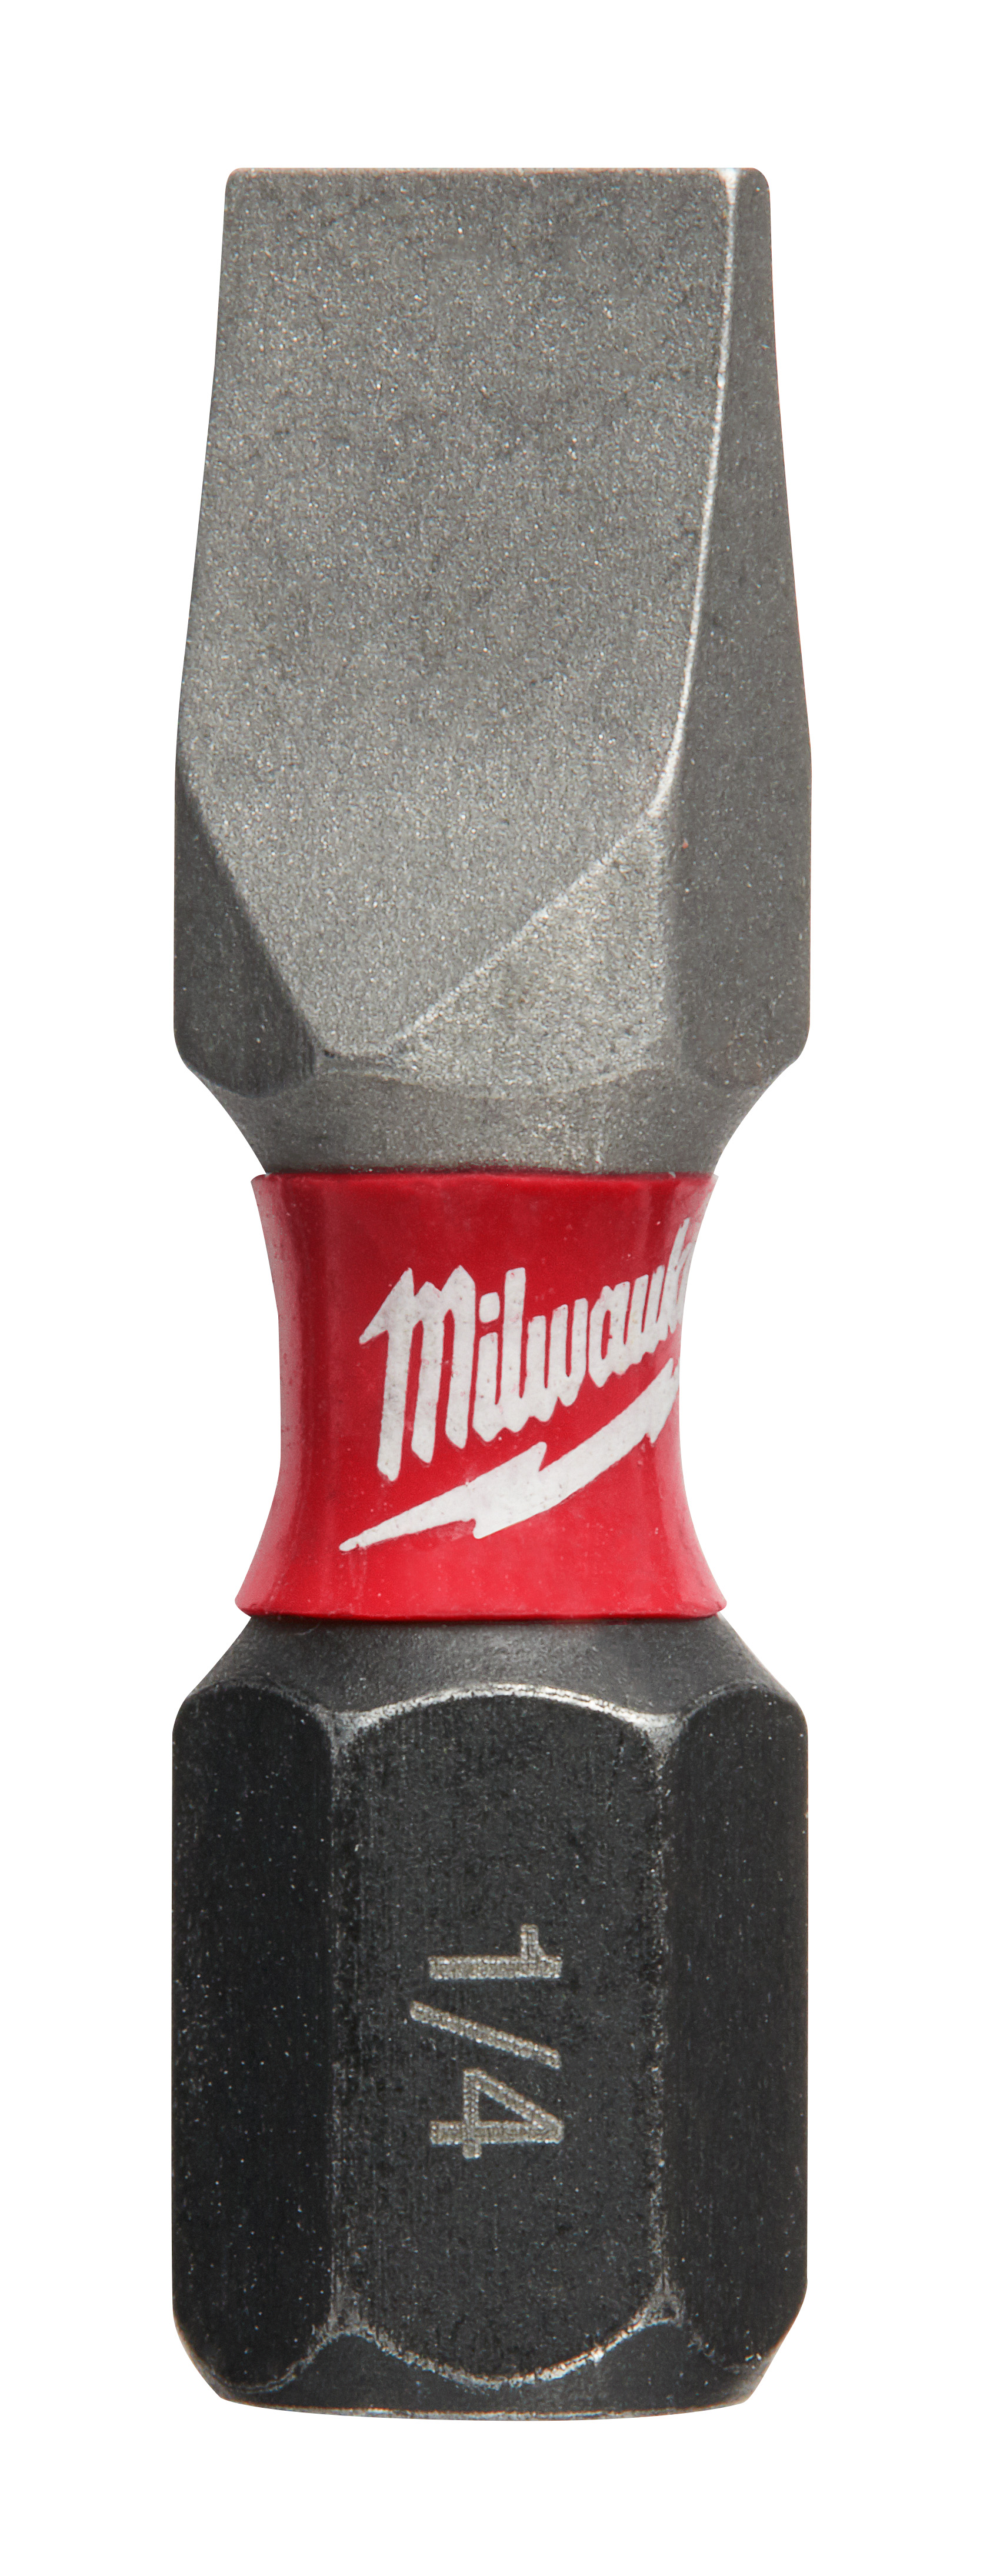 "Milwaukee 48-32-4719 SHOCKWAVE™ Impact Slotted 9/32"" Insert Bits (25 Pack)"